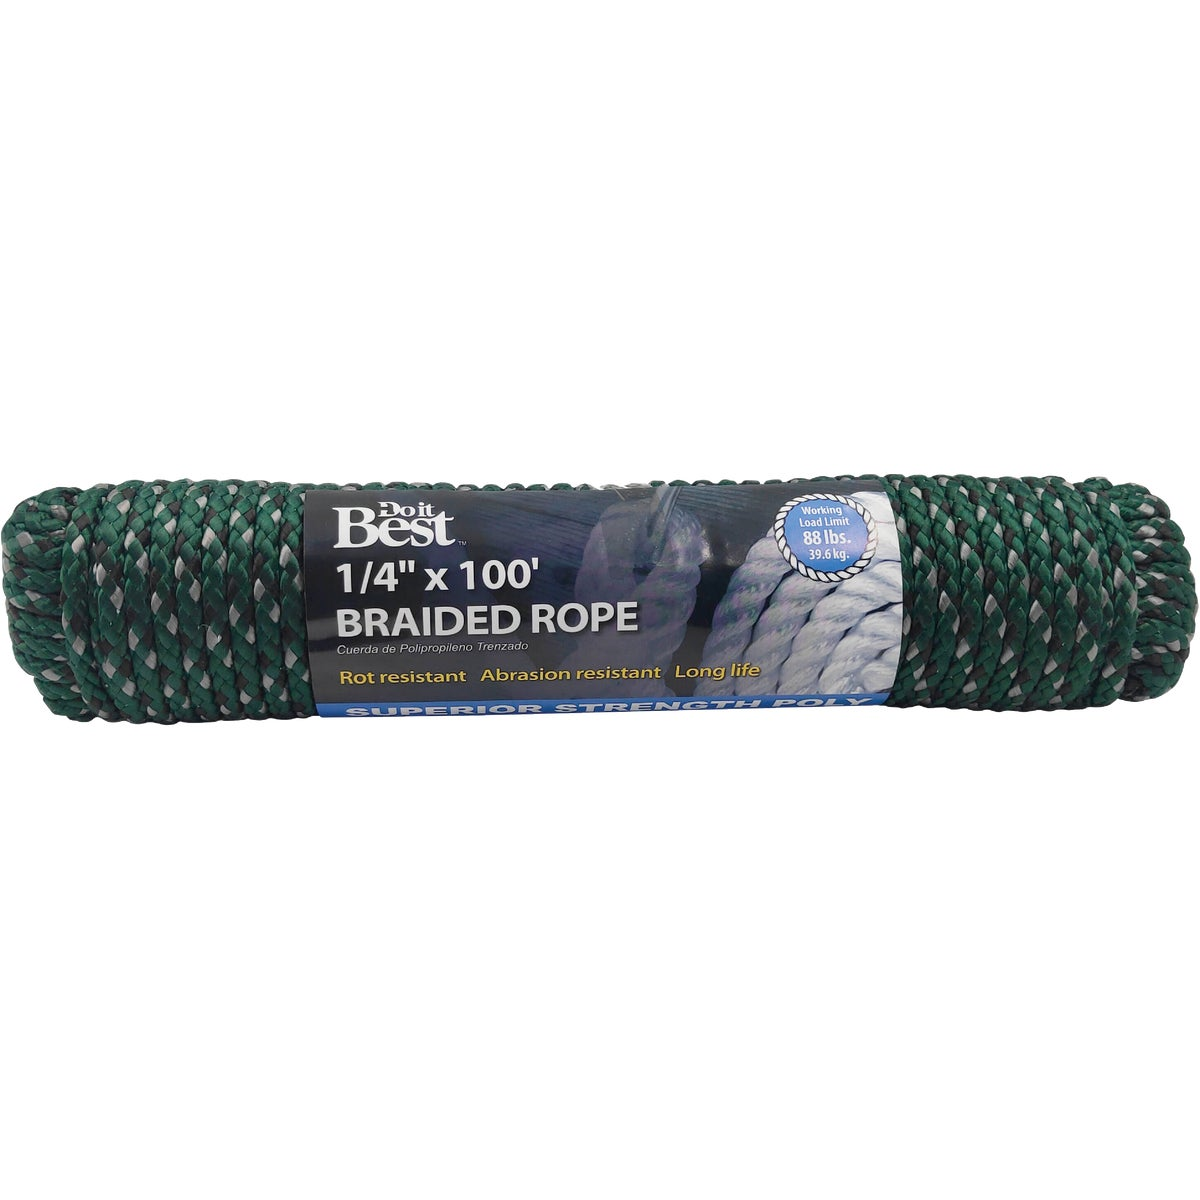 1/4X100'GRN POLYBRD ROPE - 767110 by Do it Best